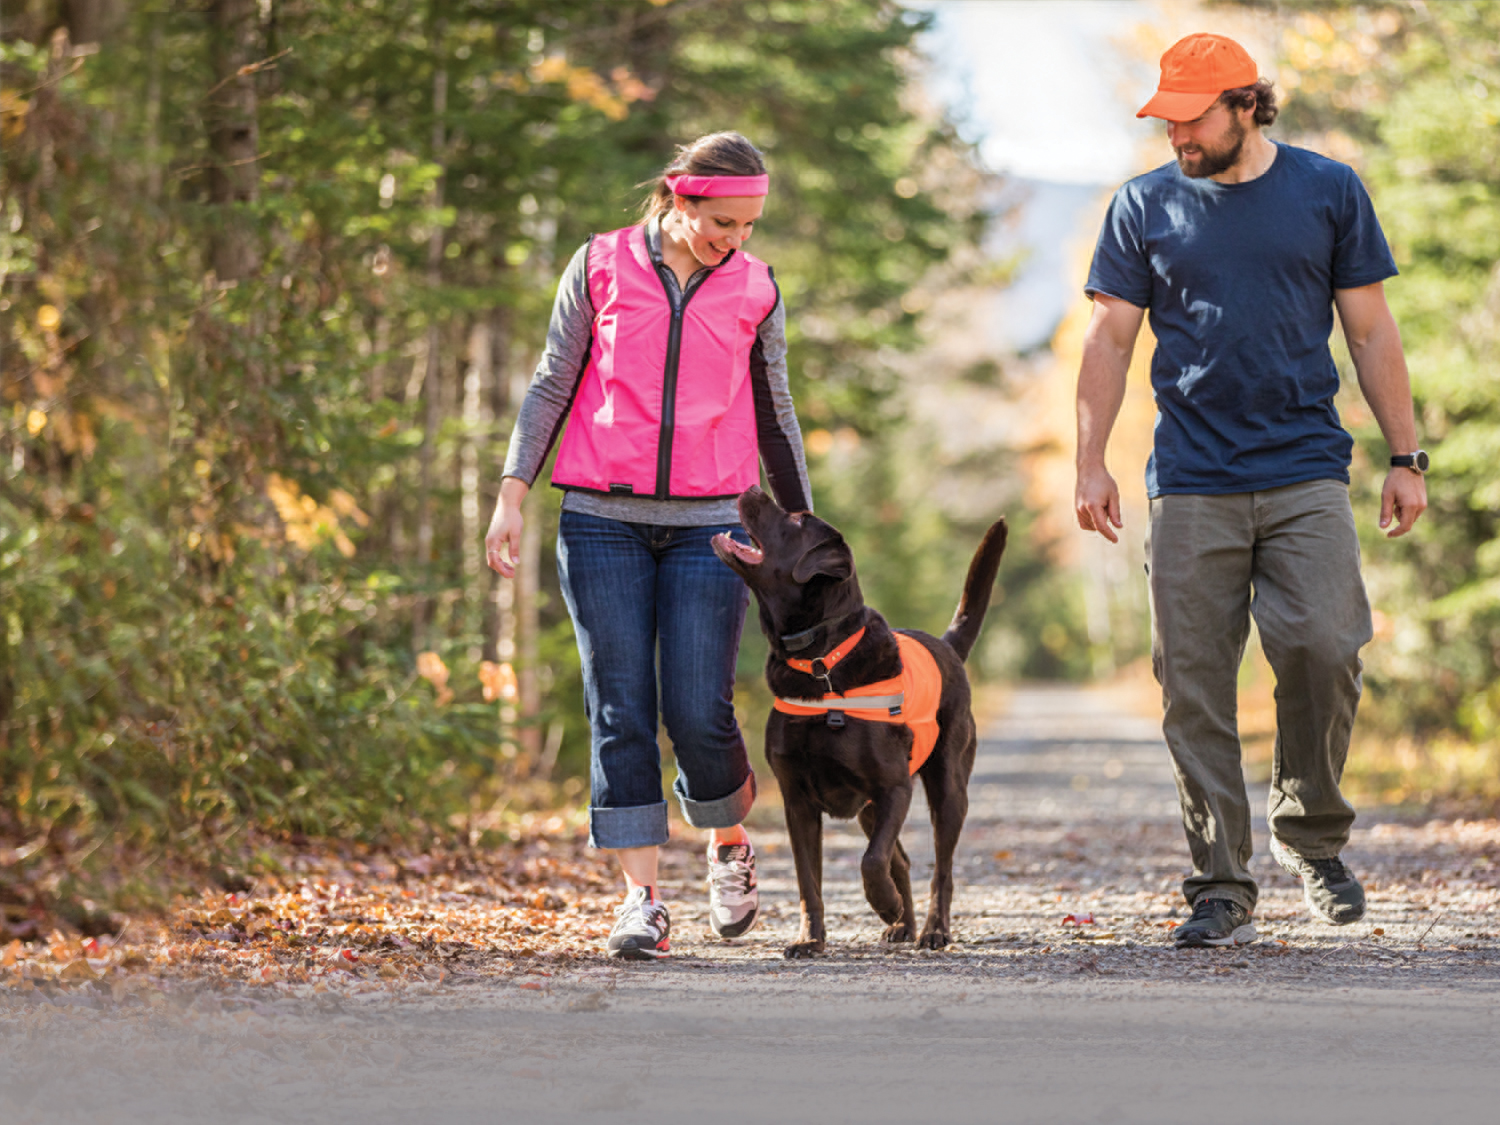 Dog Not Gone  and  No Fly Designs  make Insect Repellent Clothing for People and Pets.